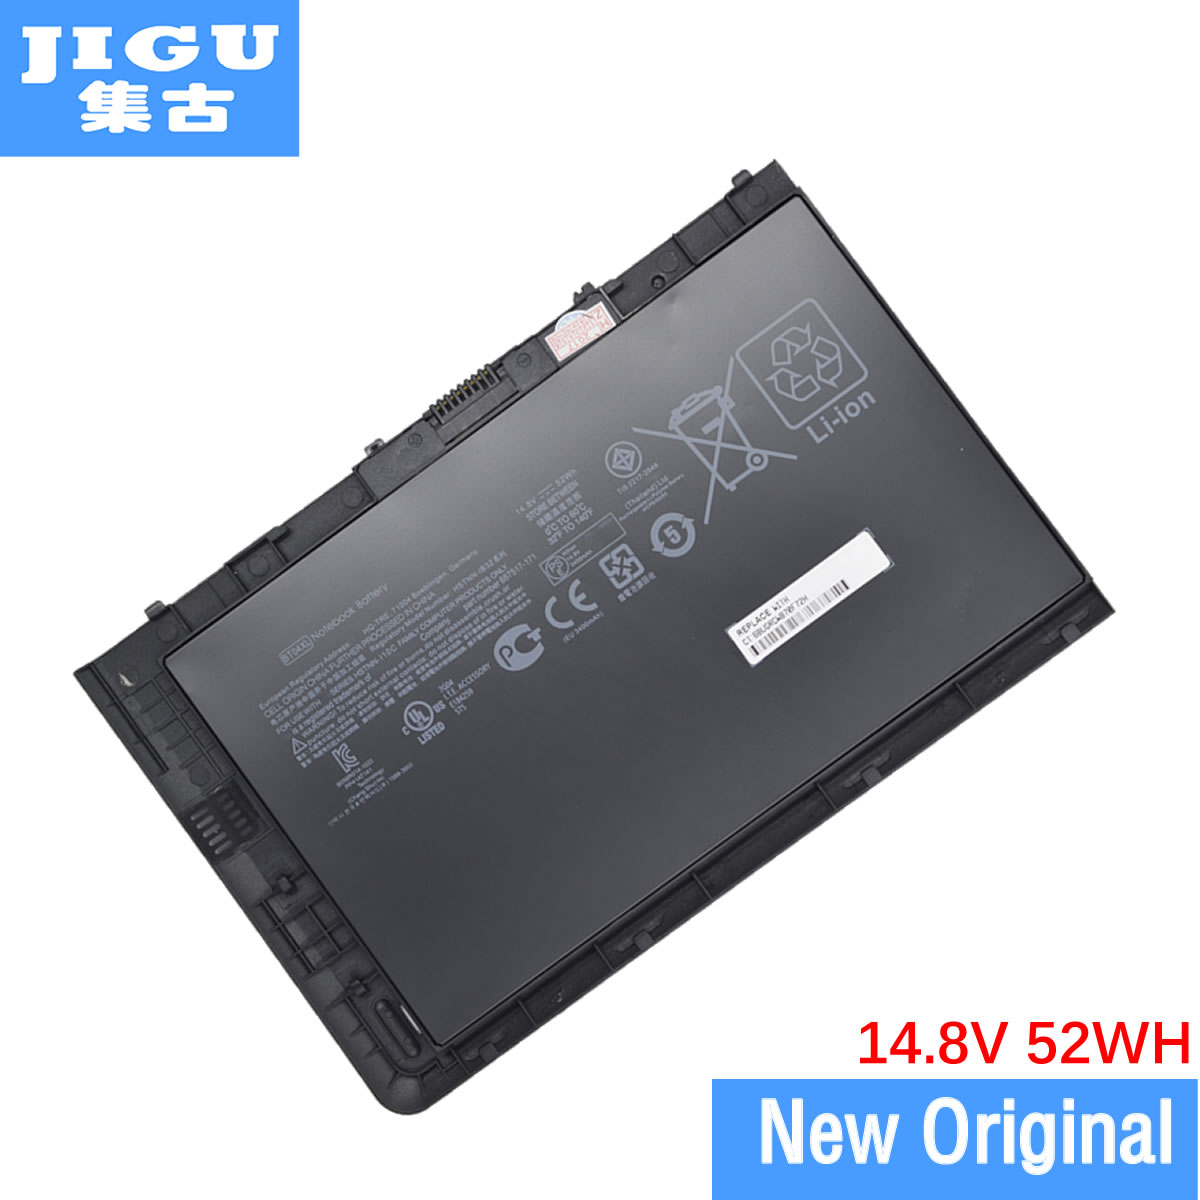 JIGU Original Laptop Battery BT04XL HSTNN-DB3 ZHSTNN-I10C 687517-2C1 HSTNN-IB3Z 687945-001 For HP FOR EliteBook Folio 9470m jigu laptop battery bl06042xl bl06xl hstnn db5d hstnn ib5d hstnn w02c for hp for elitebook folio 1040 g0 g1 l7z22pa